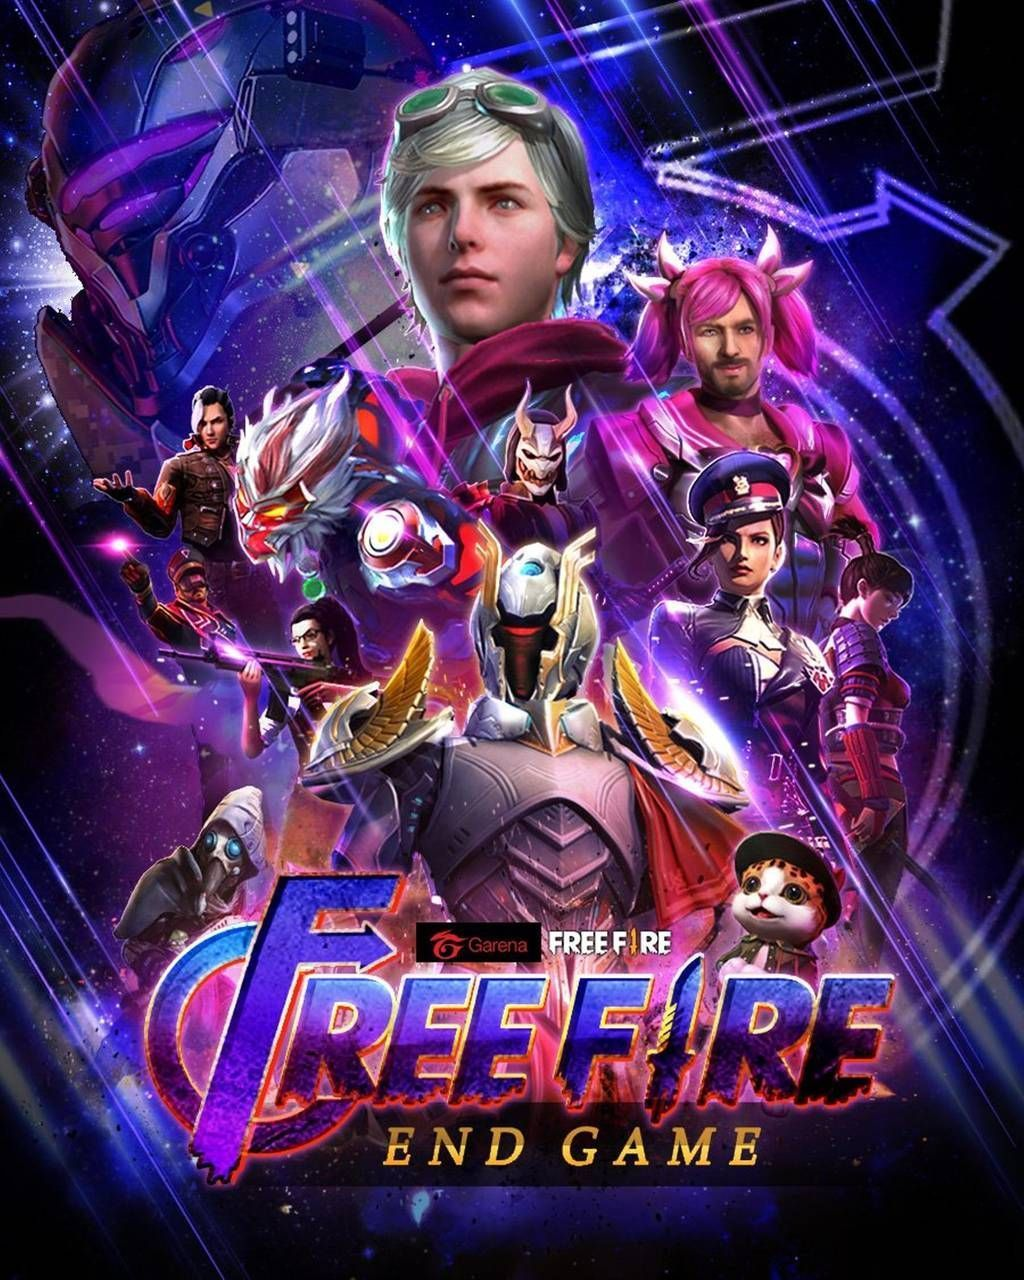 Free Fire Wallpapers Free Fire In 2020 Gaming Wallpapers Wallpaper Free Download Joker Wallpapers